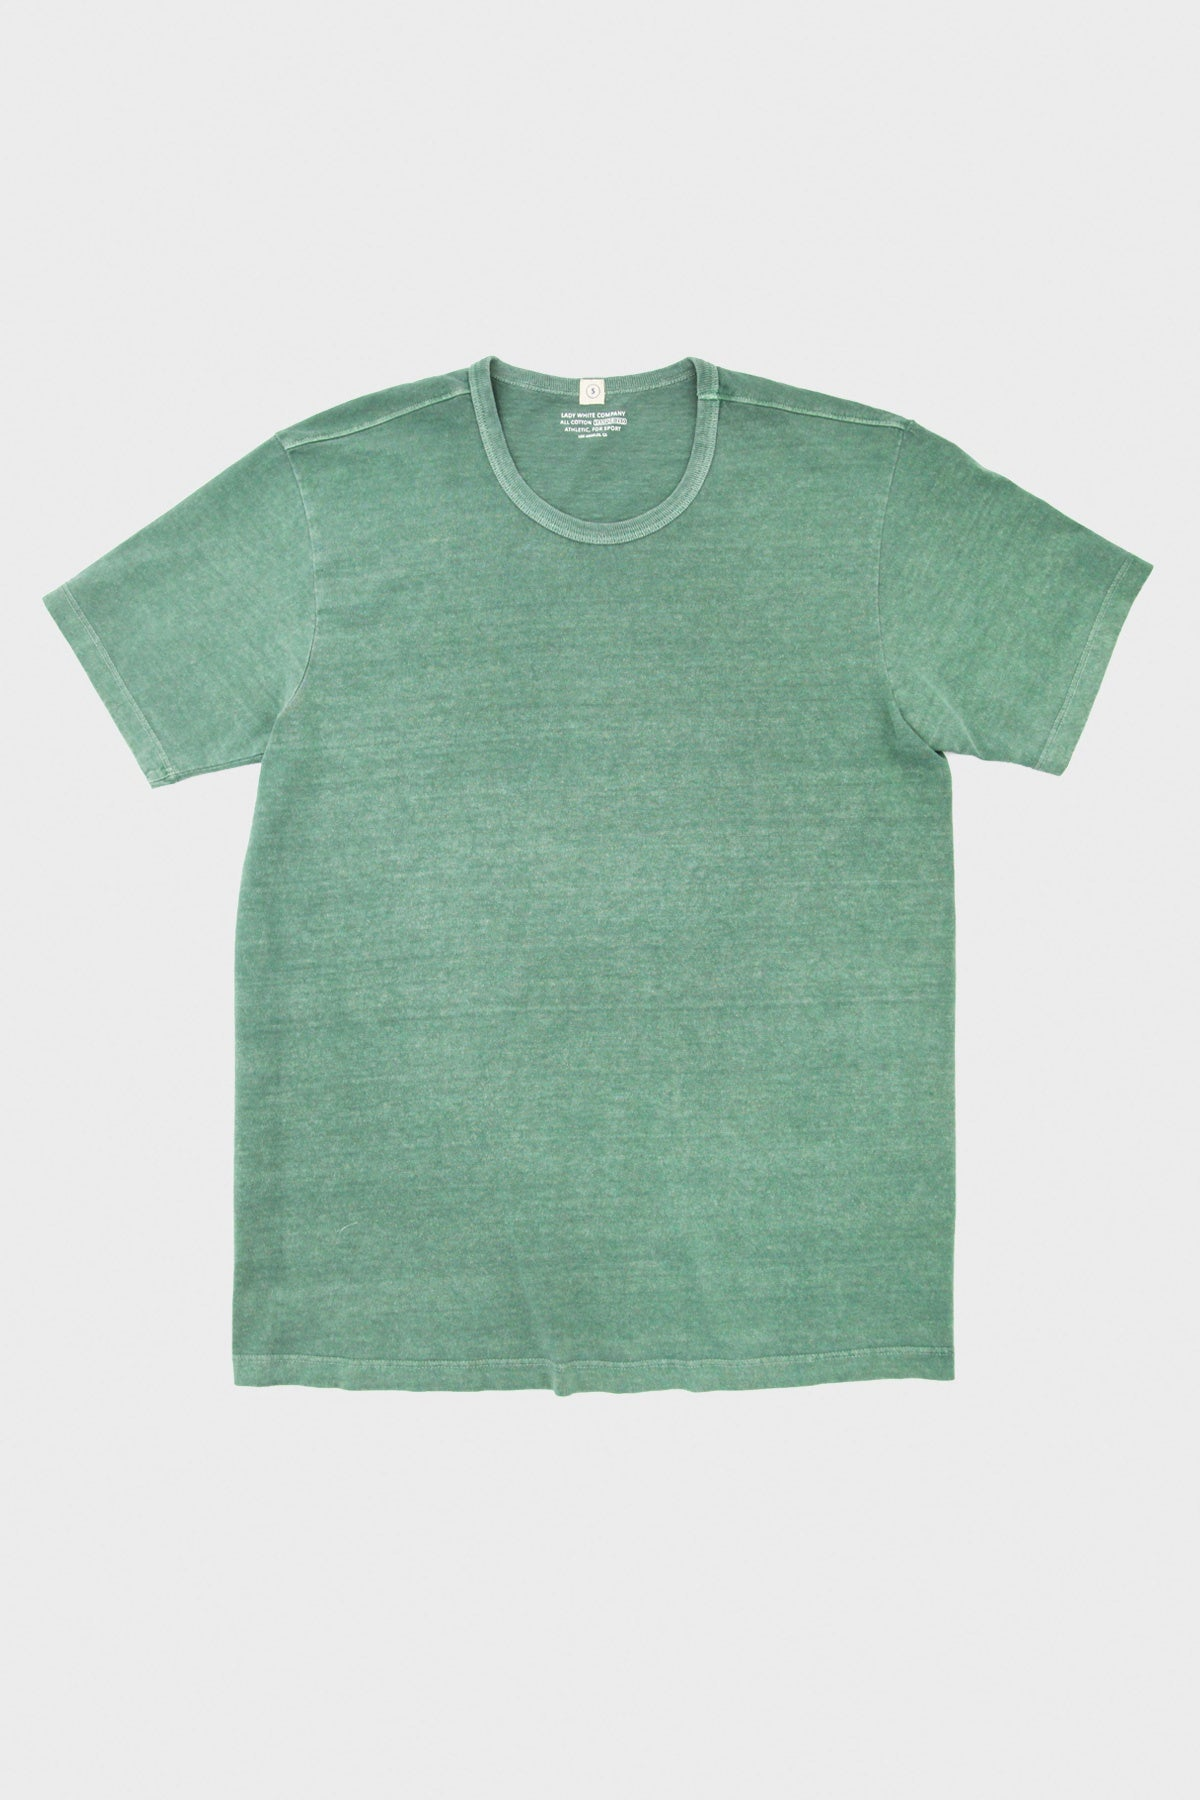 Lady White Co. - Canoe Club T-Shirt - Chalk Green - Canoe Club